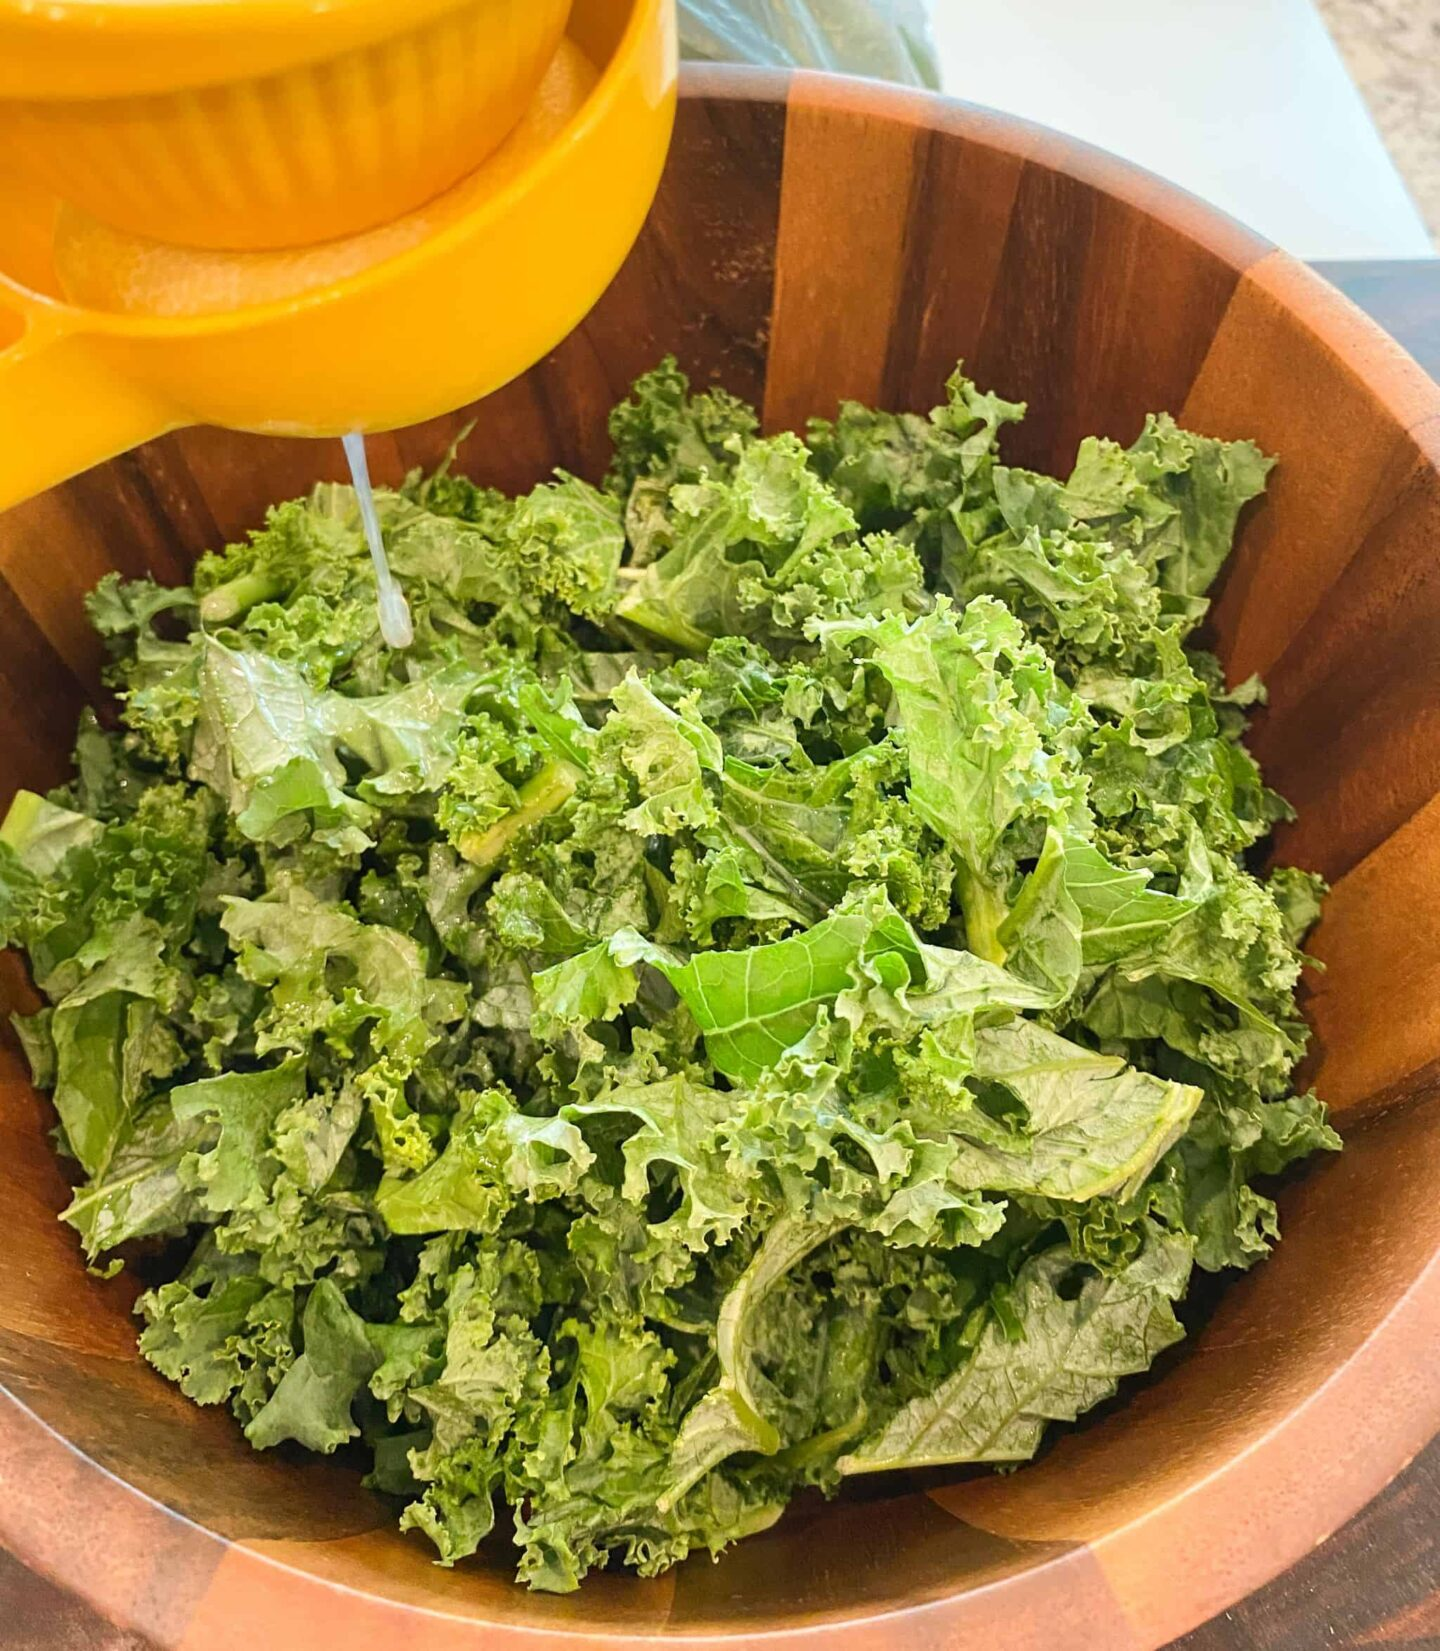 lemon-juice-to-cook-the-kale-and-soften